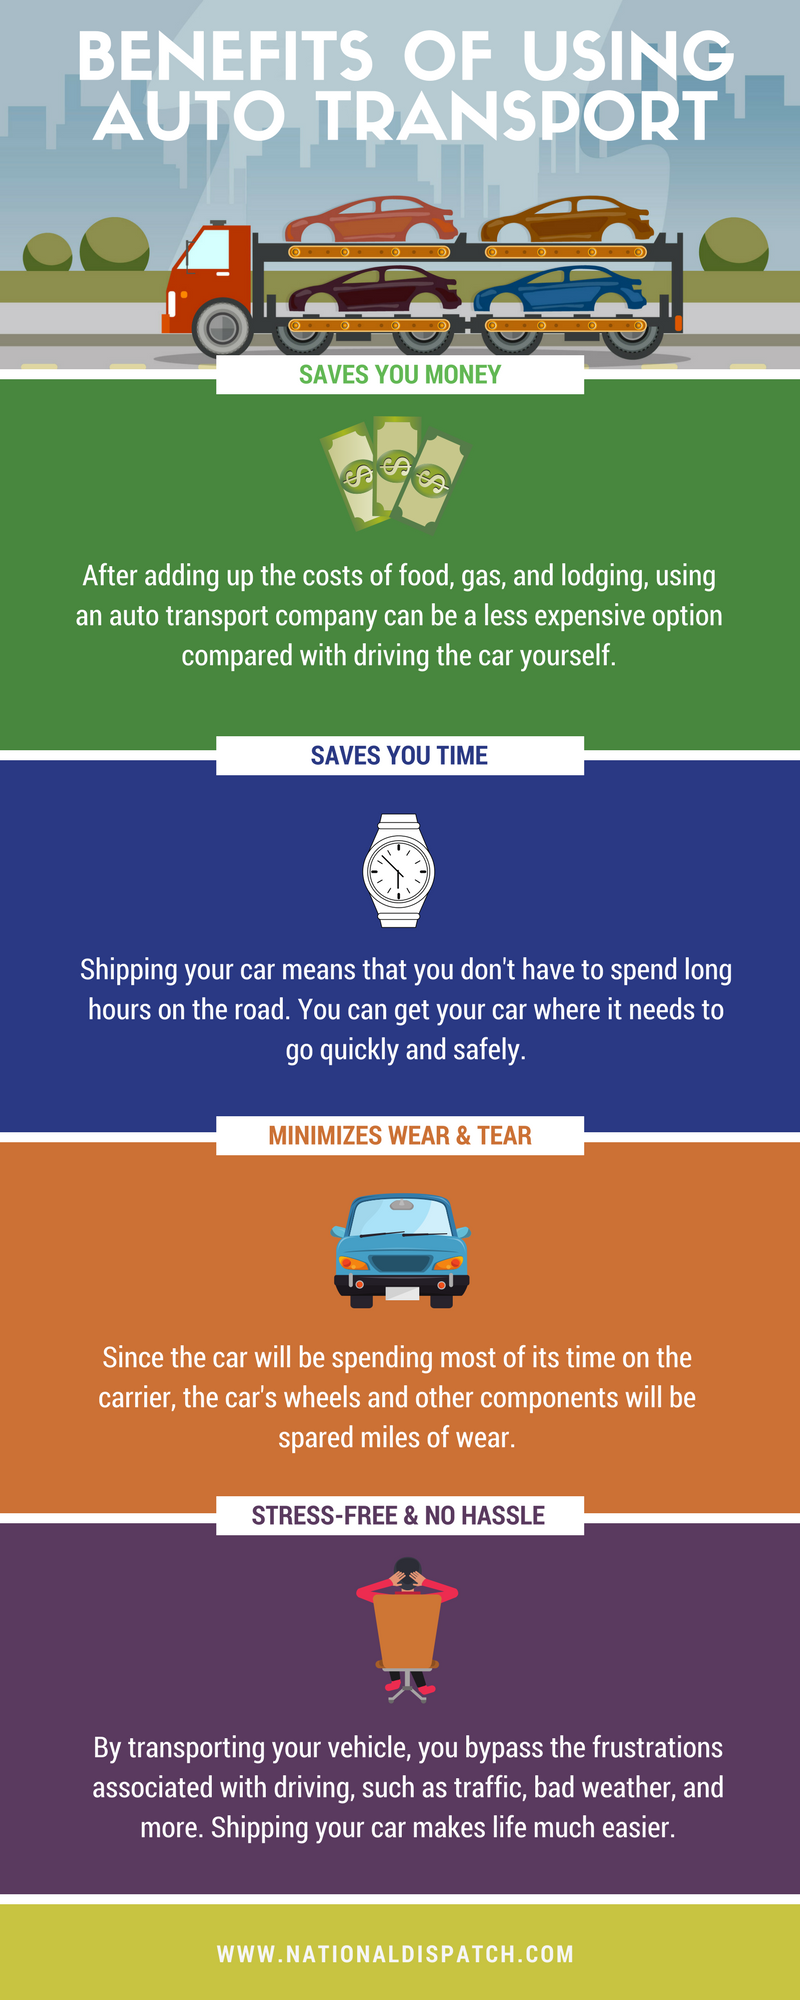 Benefits Of Auto Transport Infographic